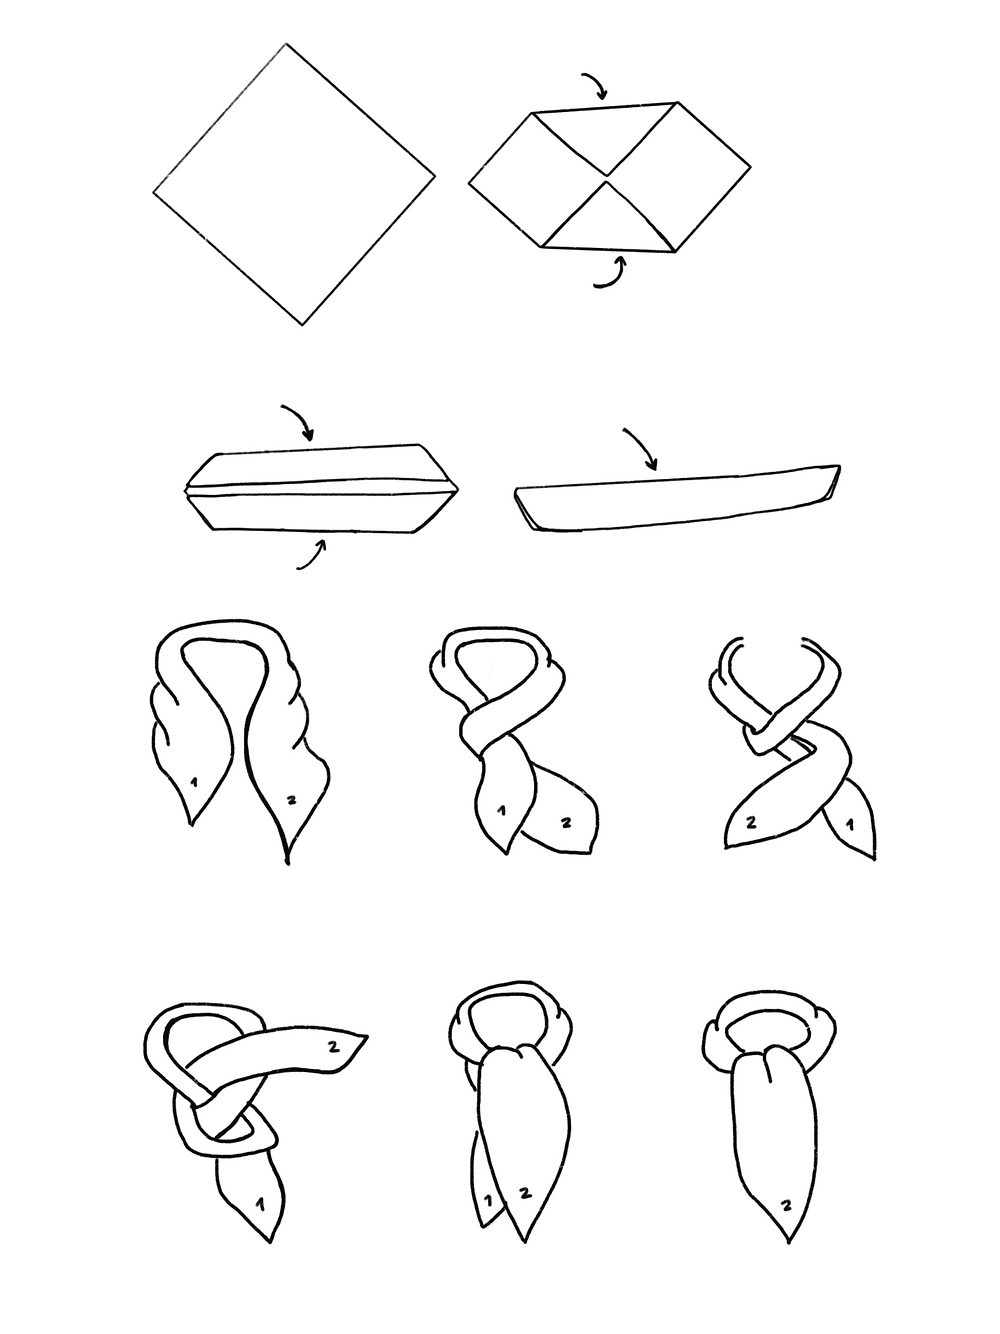 CARMENTA - drawing ascot knot tutorial, Costa Rica design and art printed on fabric